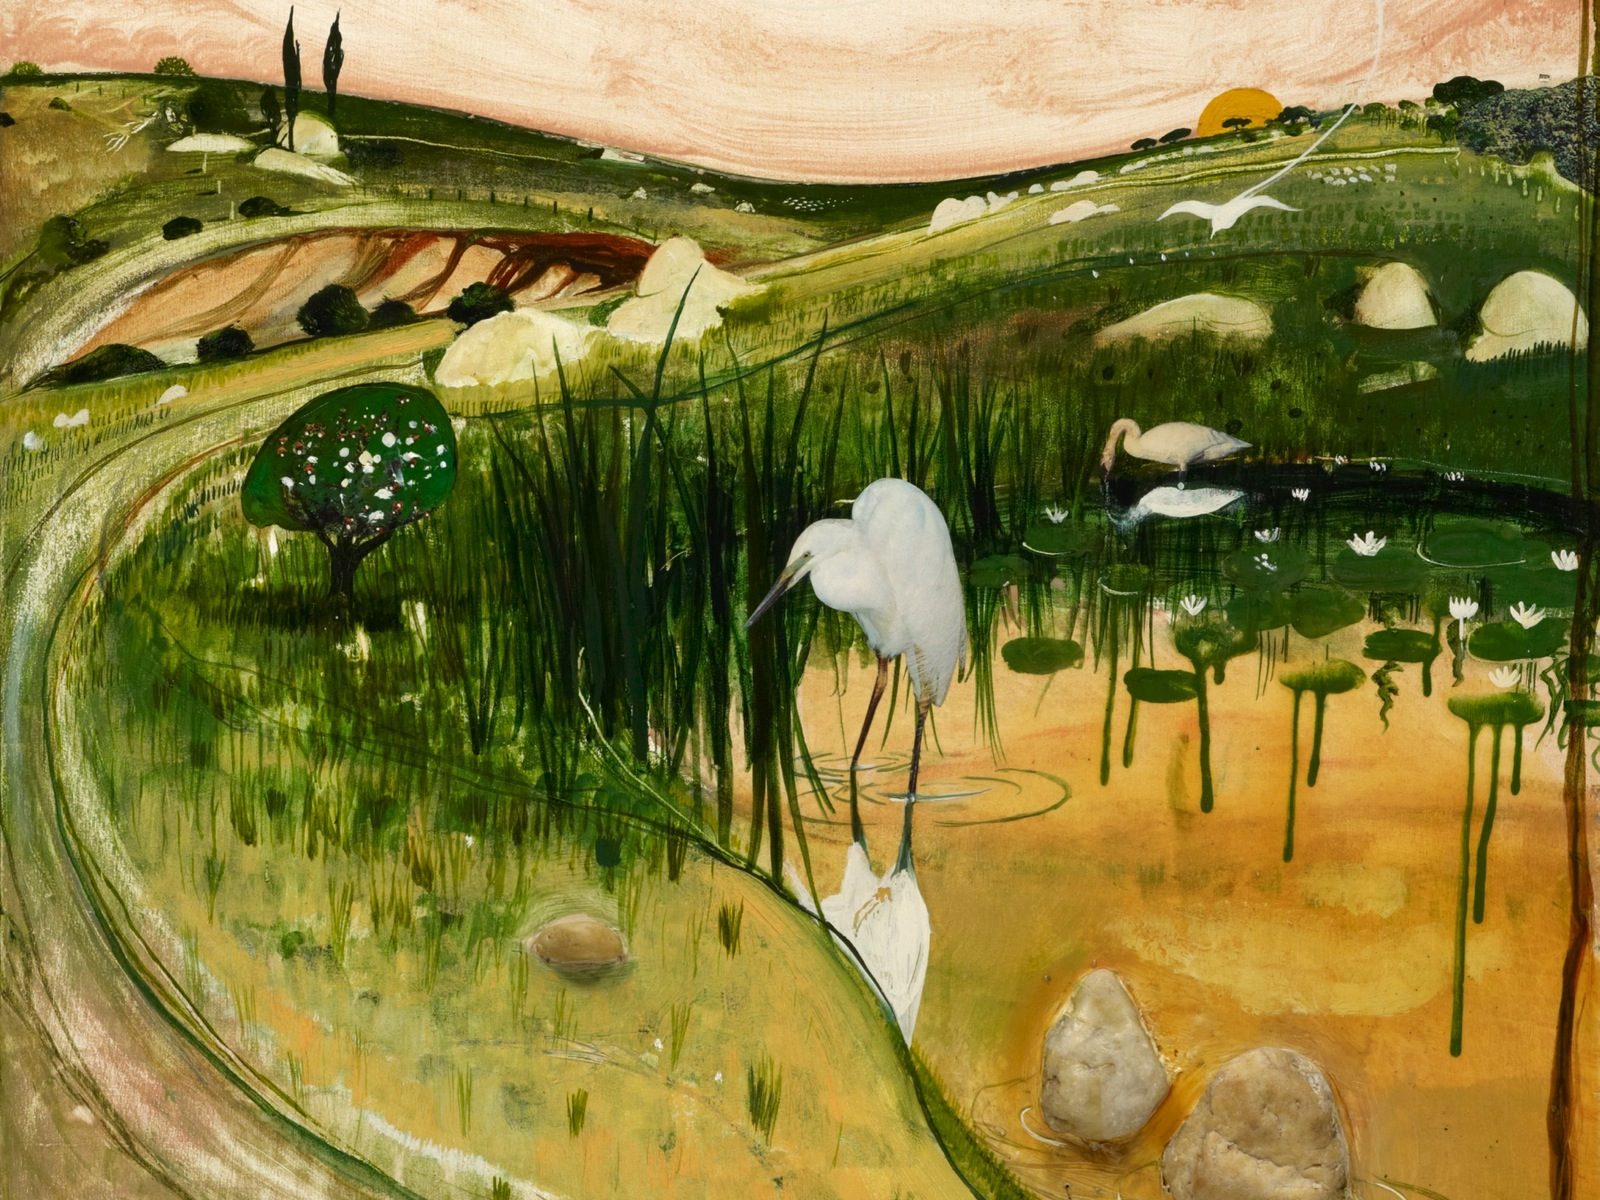 Detail: Brett Whiteley, Marulan bird with rocks, circa 1980, oil, gouache, collage, rocks on plywood